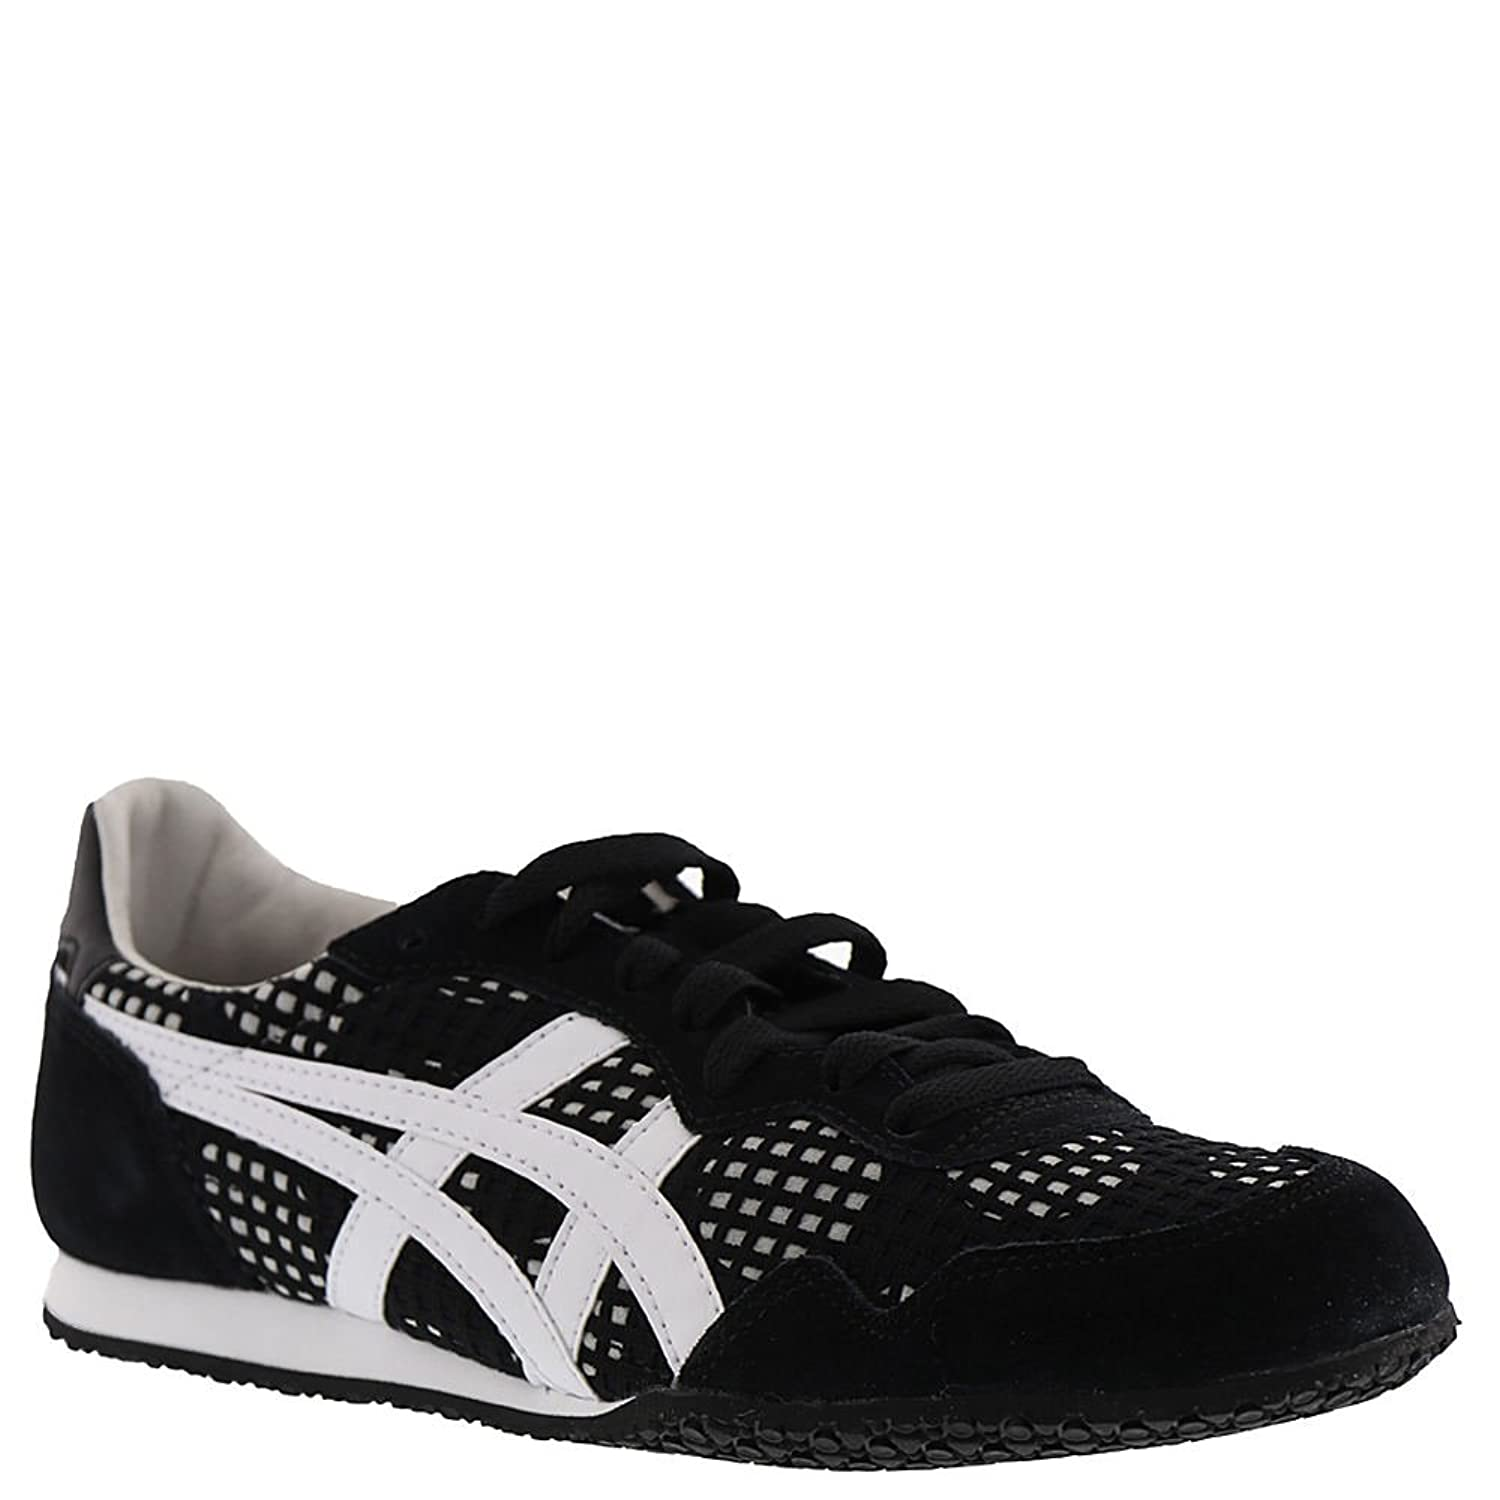 8da8e5a7ac3f Details about Onitsuka Tiger by ASICS Serrano Women s Sneaker